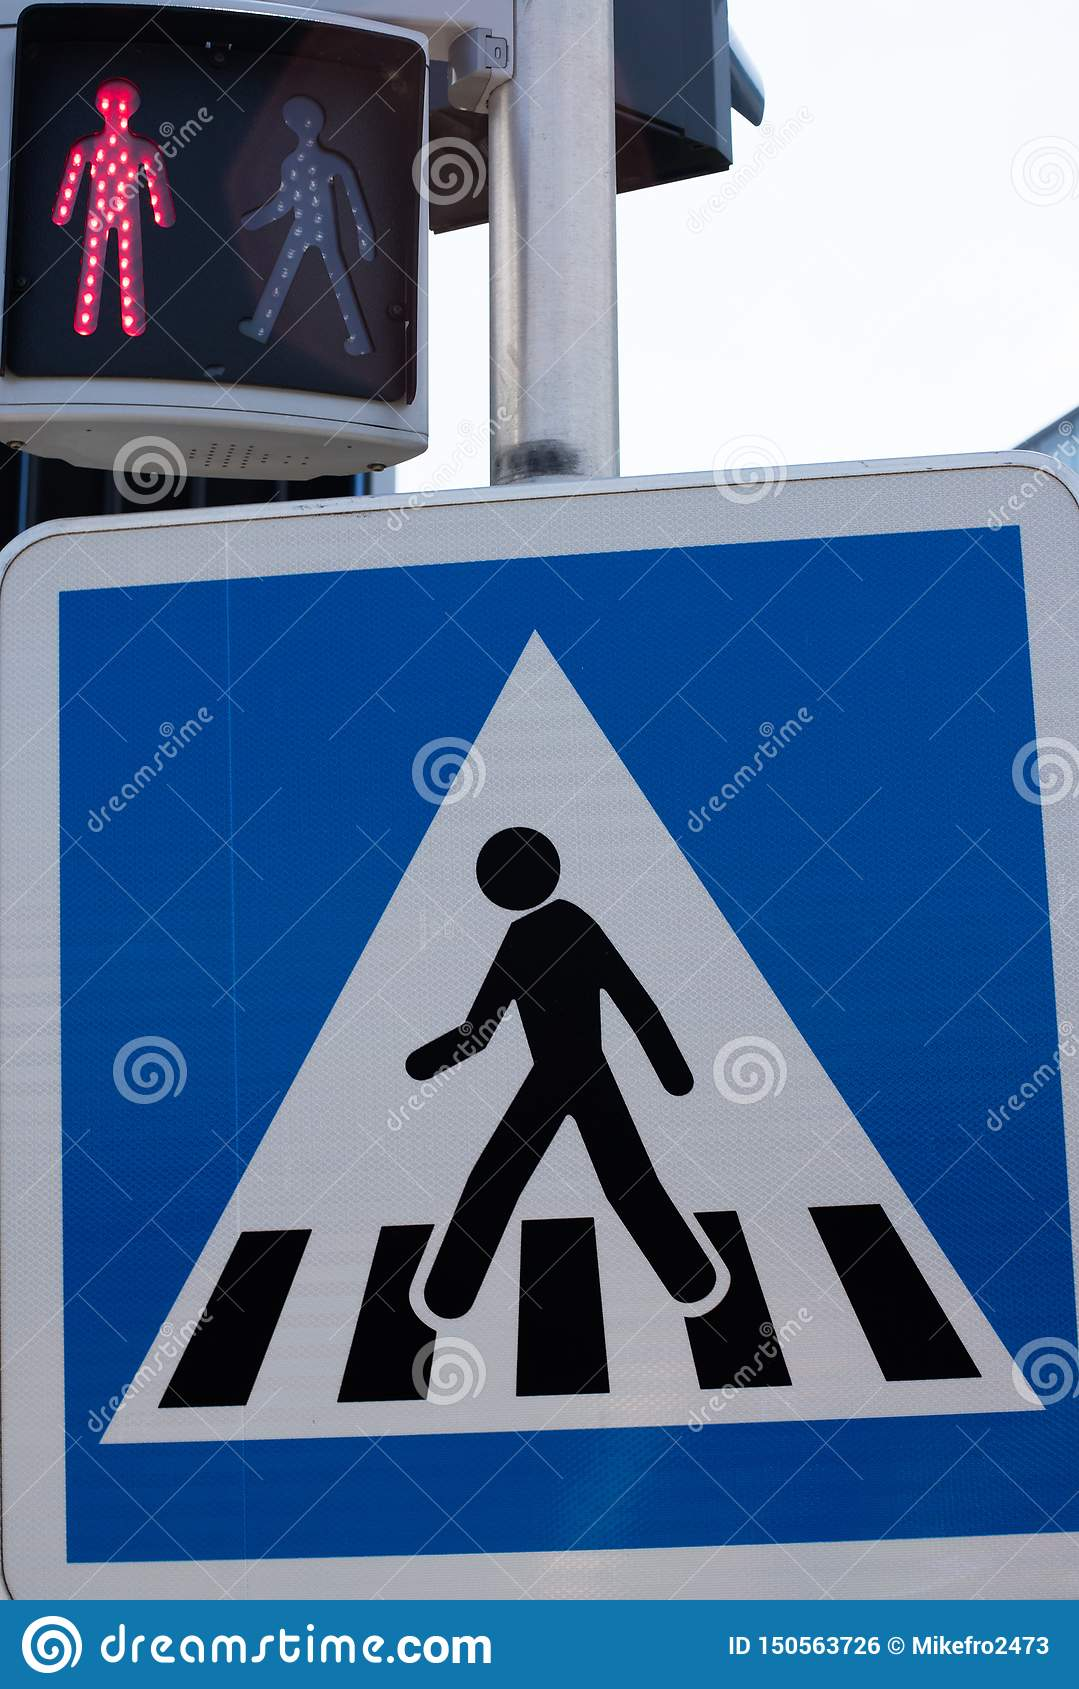 Crosswalk road sign. Pedestrian crossing sign and traffic light for pedestrians. Red light no passage. Standing man